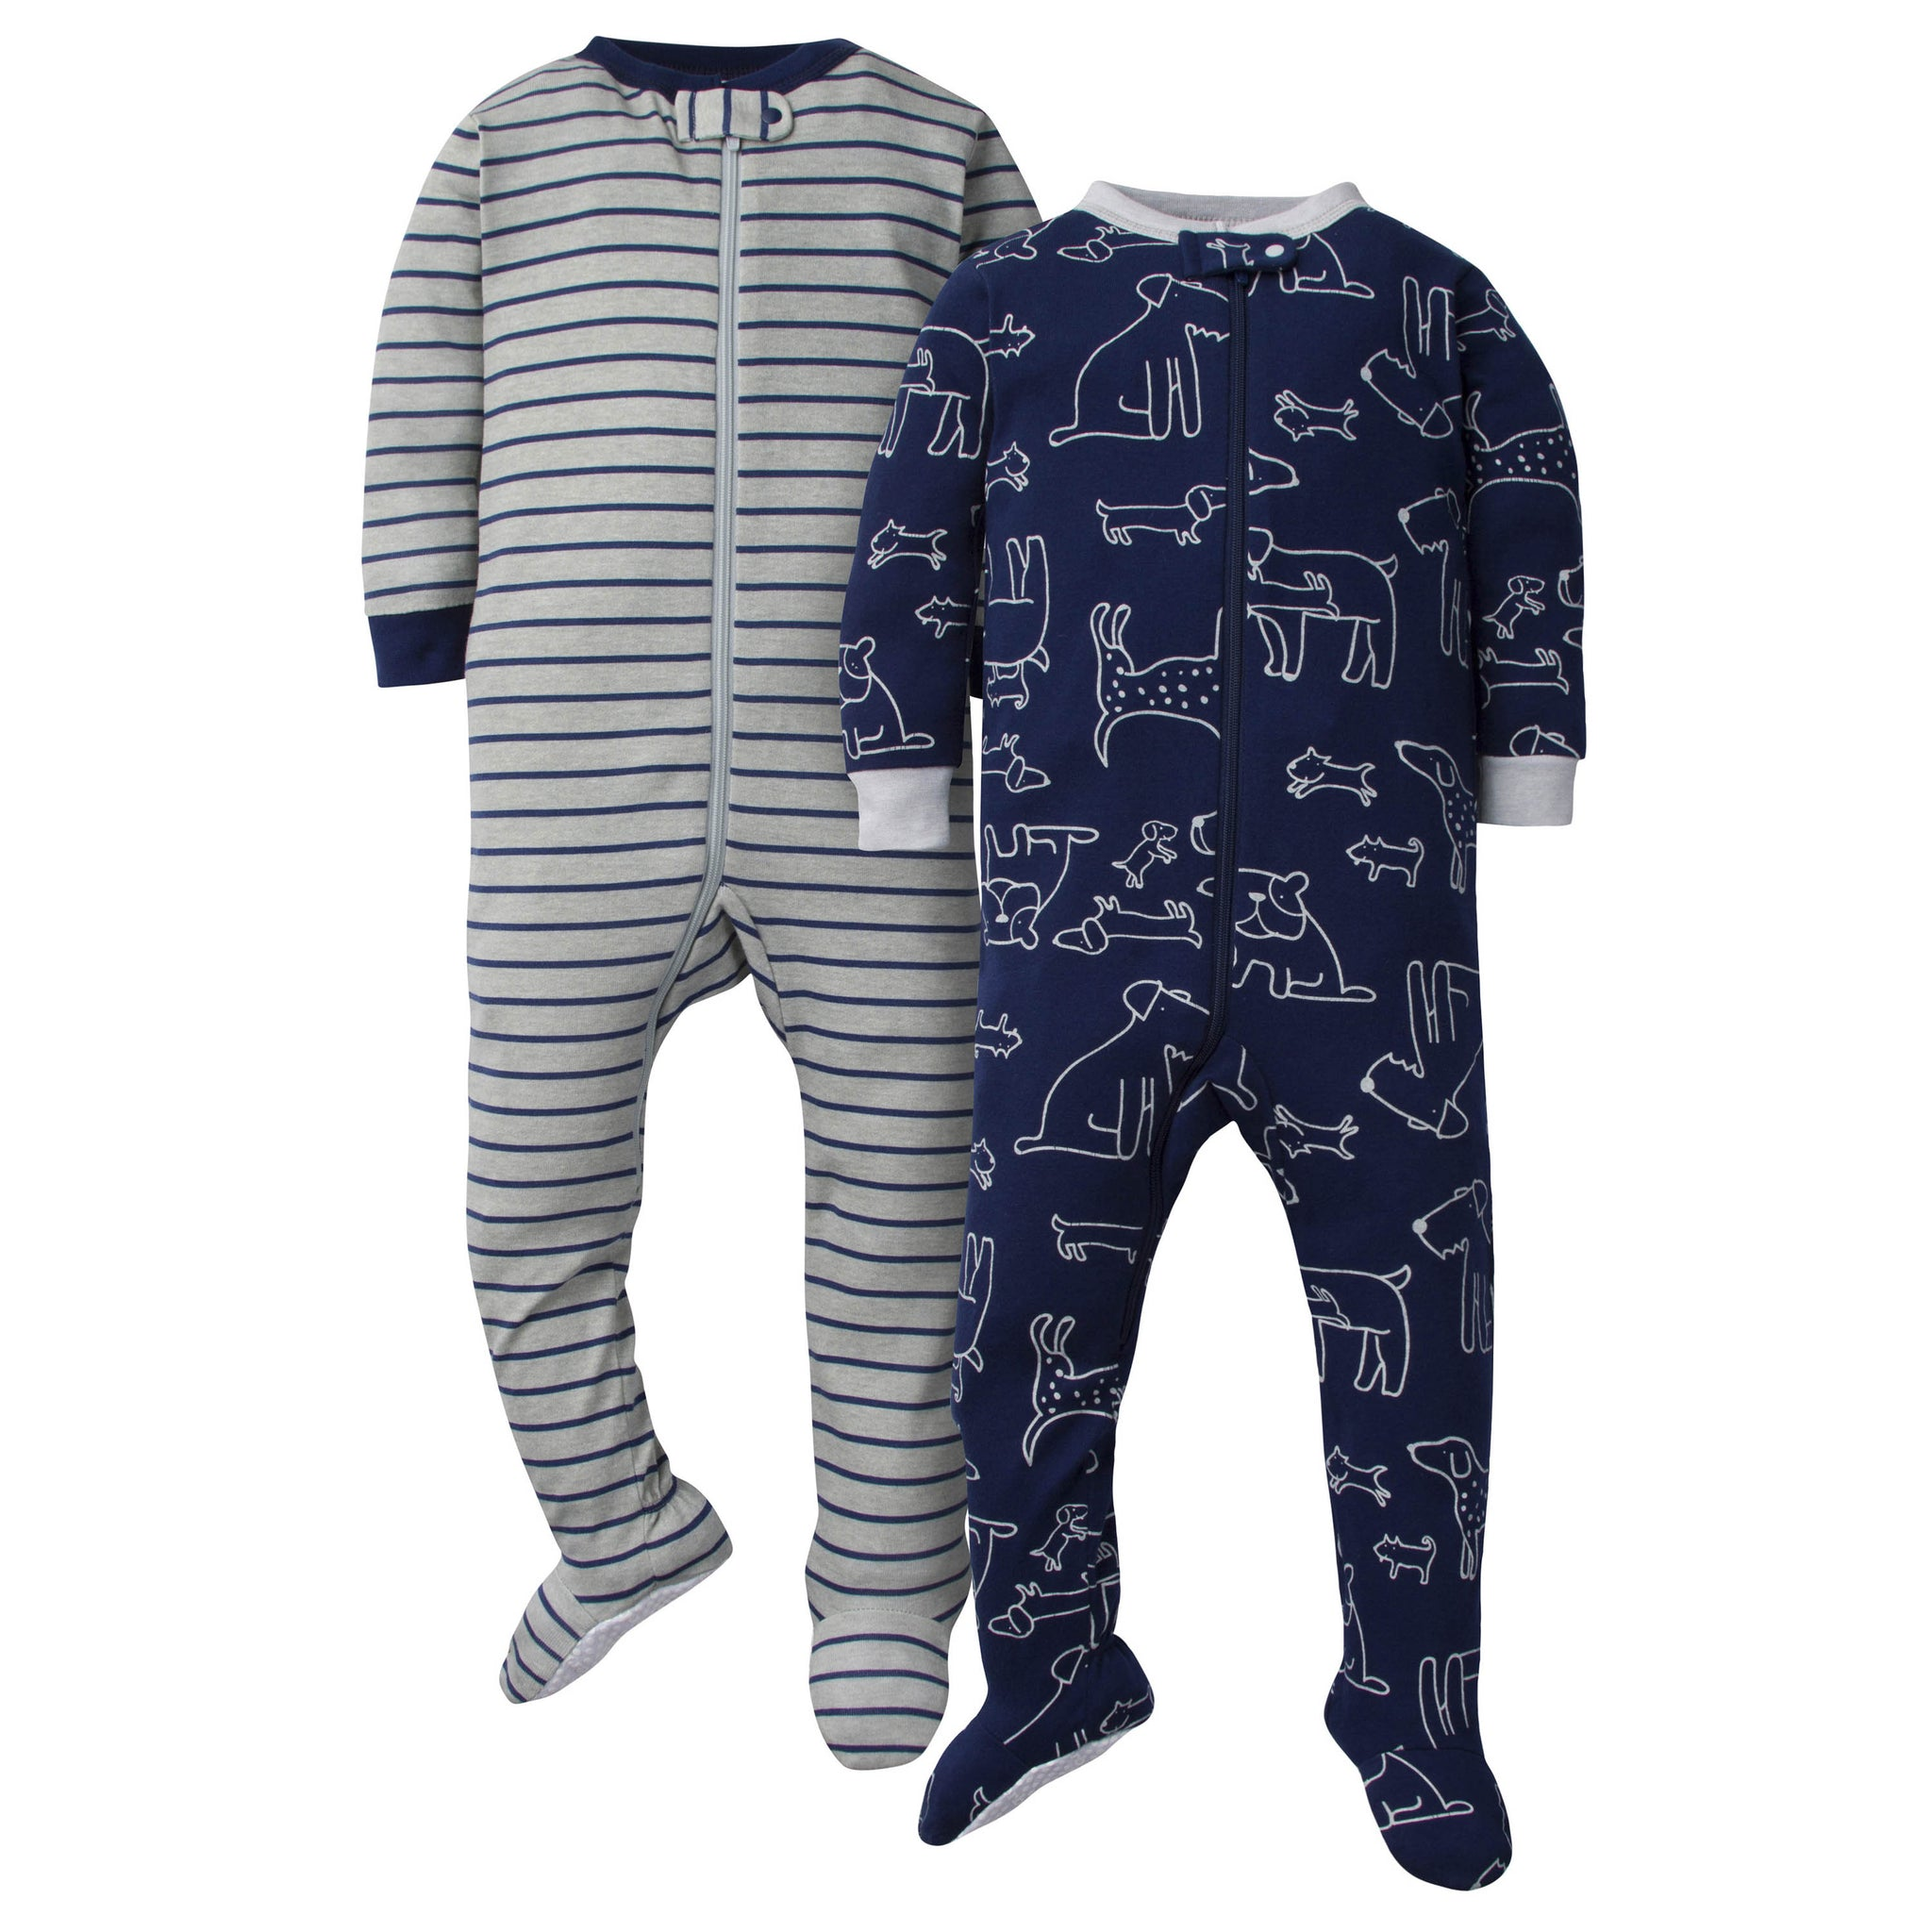 2-Pack Baby Boys Footed Union Suits - Dogs